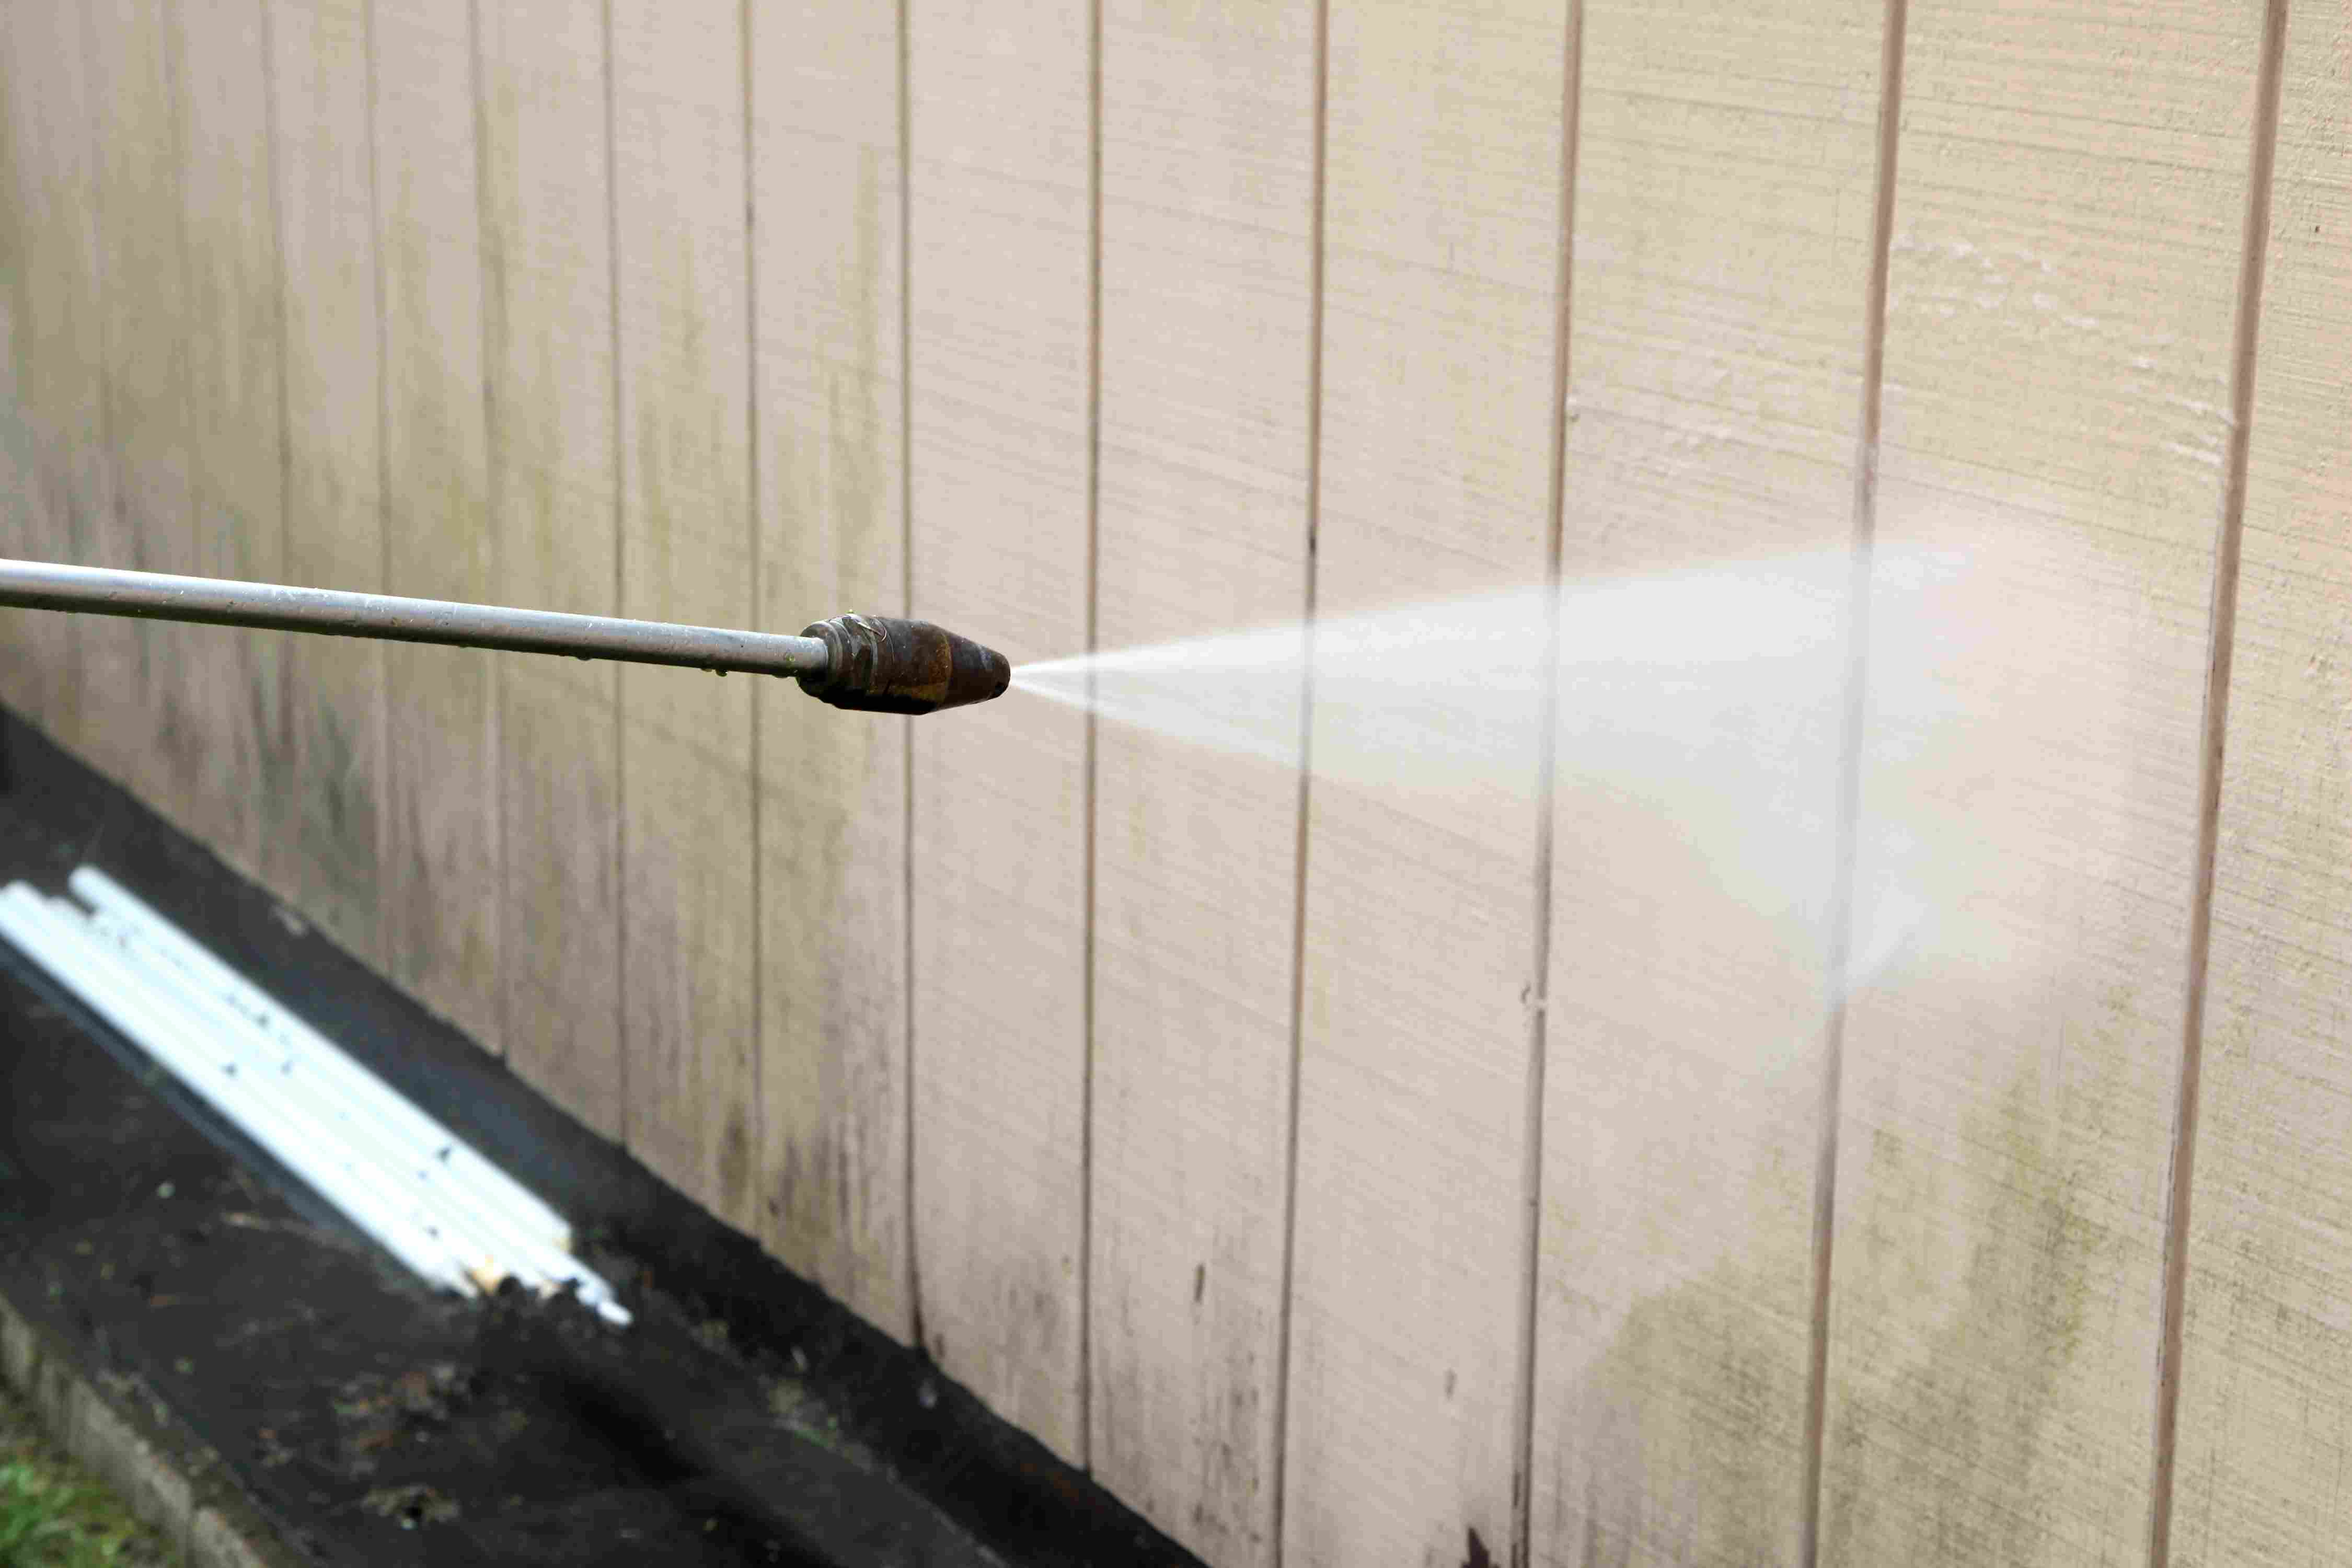 Power-washer spraying a wood wall